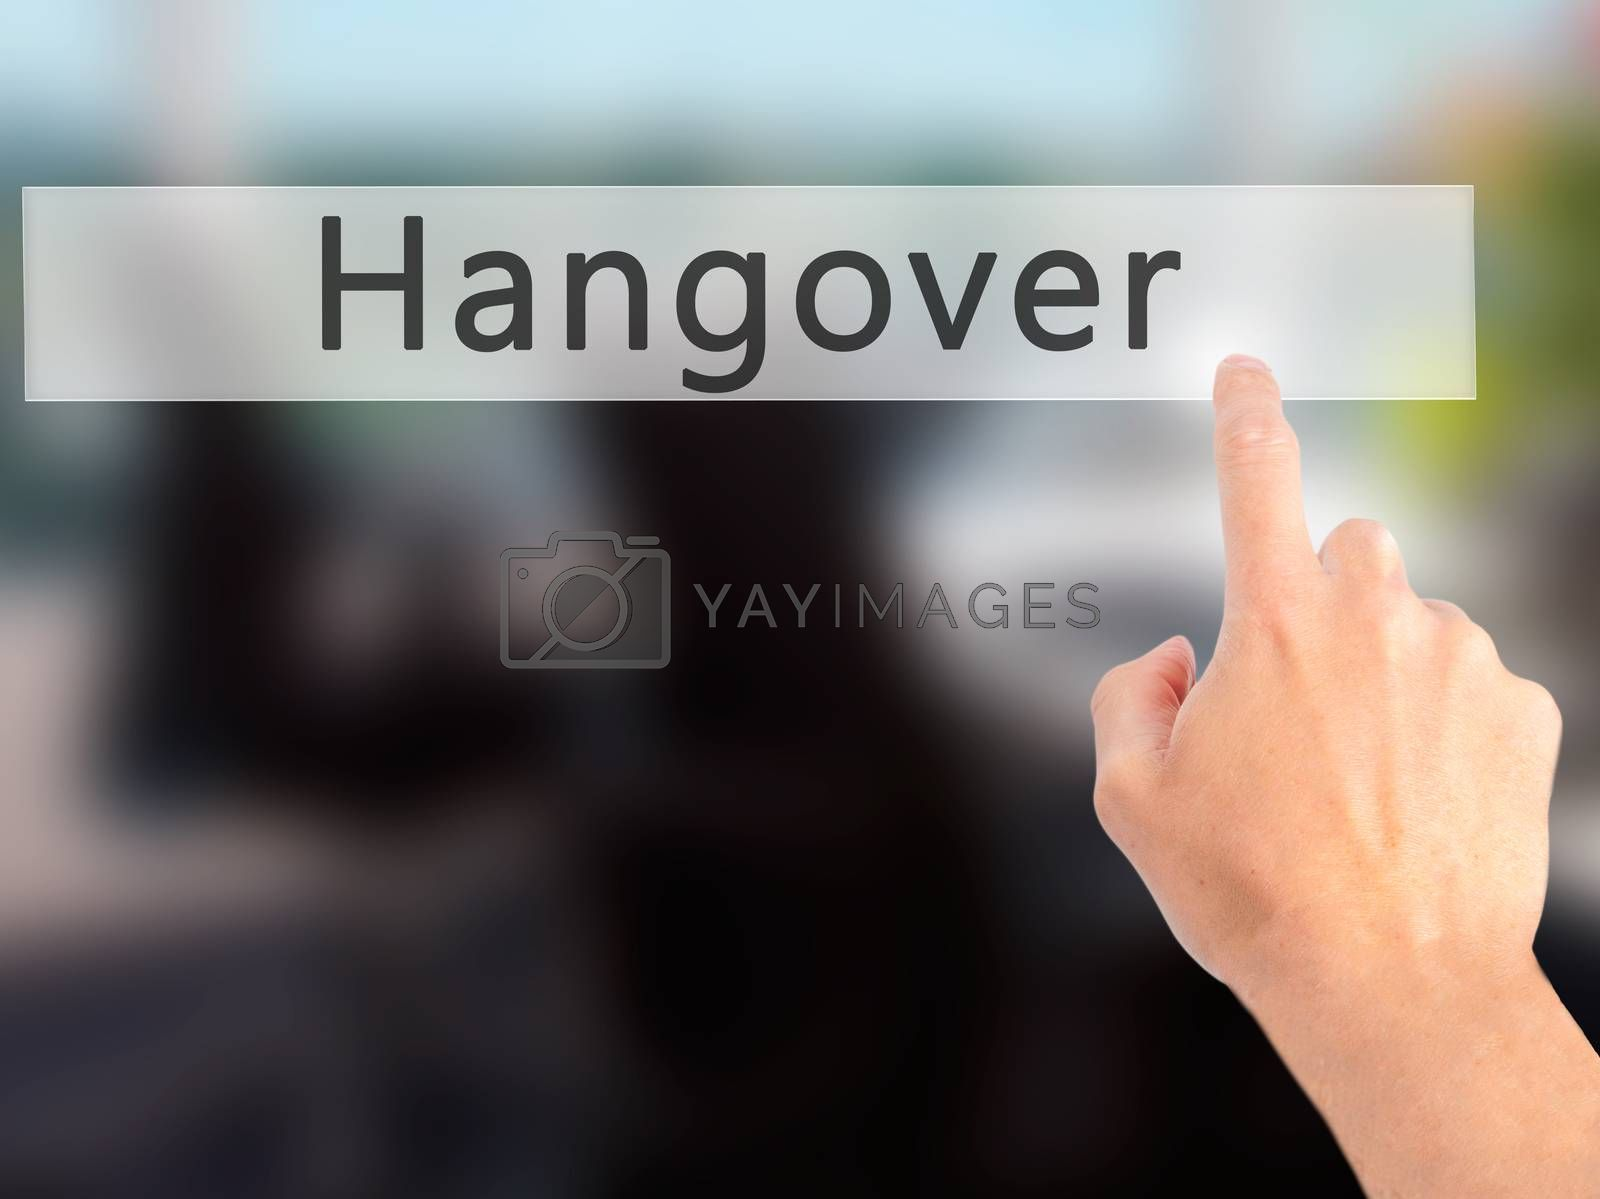 Hangover - Hand pressing a button on blurred background concept  by netsay.net